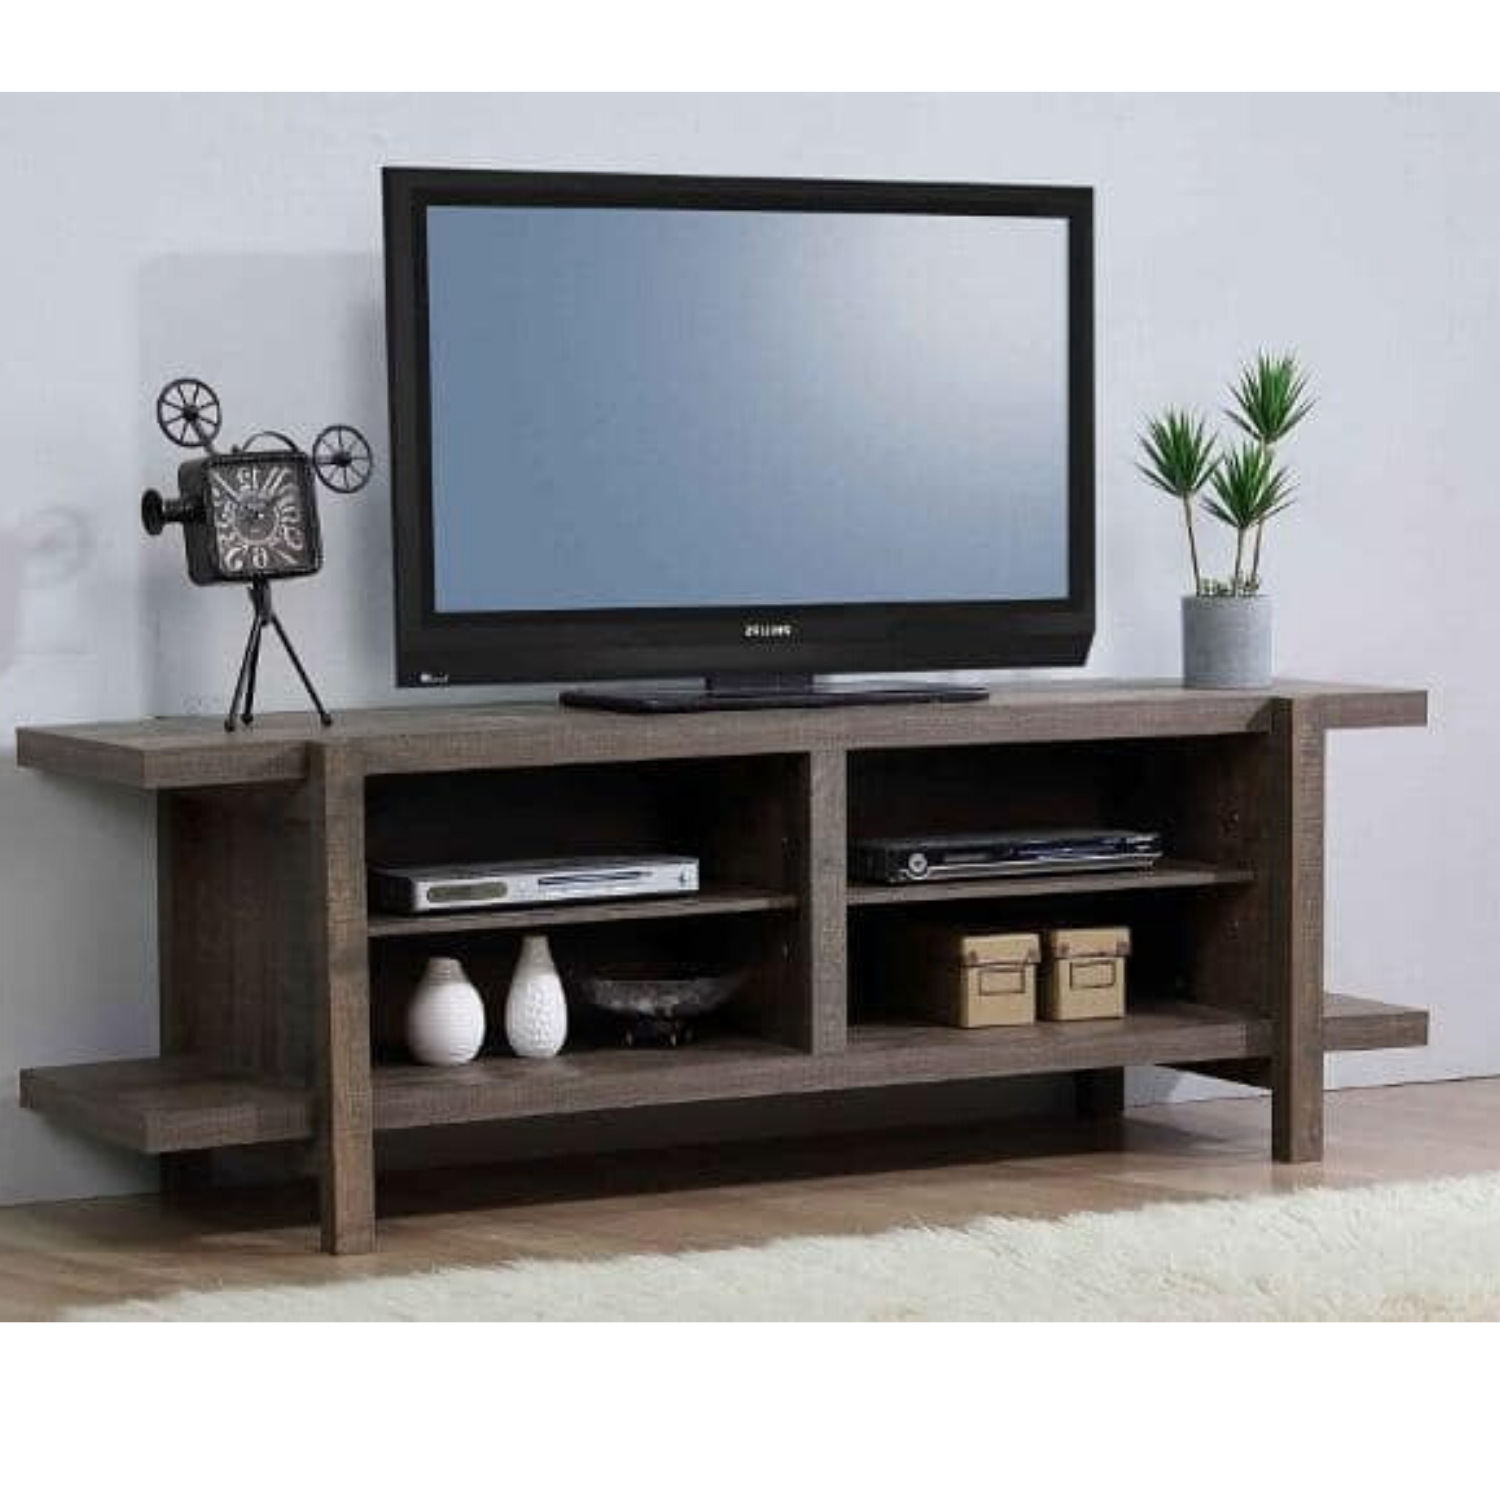 """Tammy 65'' Tv Stand For Tvs Up To 70'', Rustic Mdf Wood Tv With Regard To Popular Olinda Tv Stands For Tvs Up To 65"""" (View 4 of 25)"""